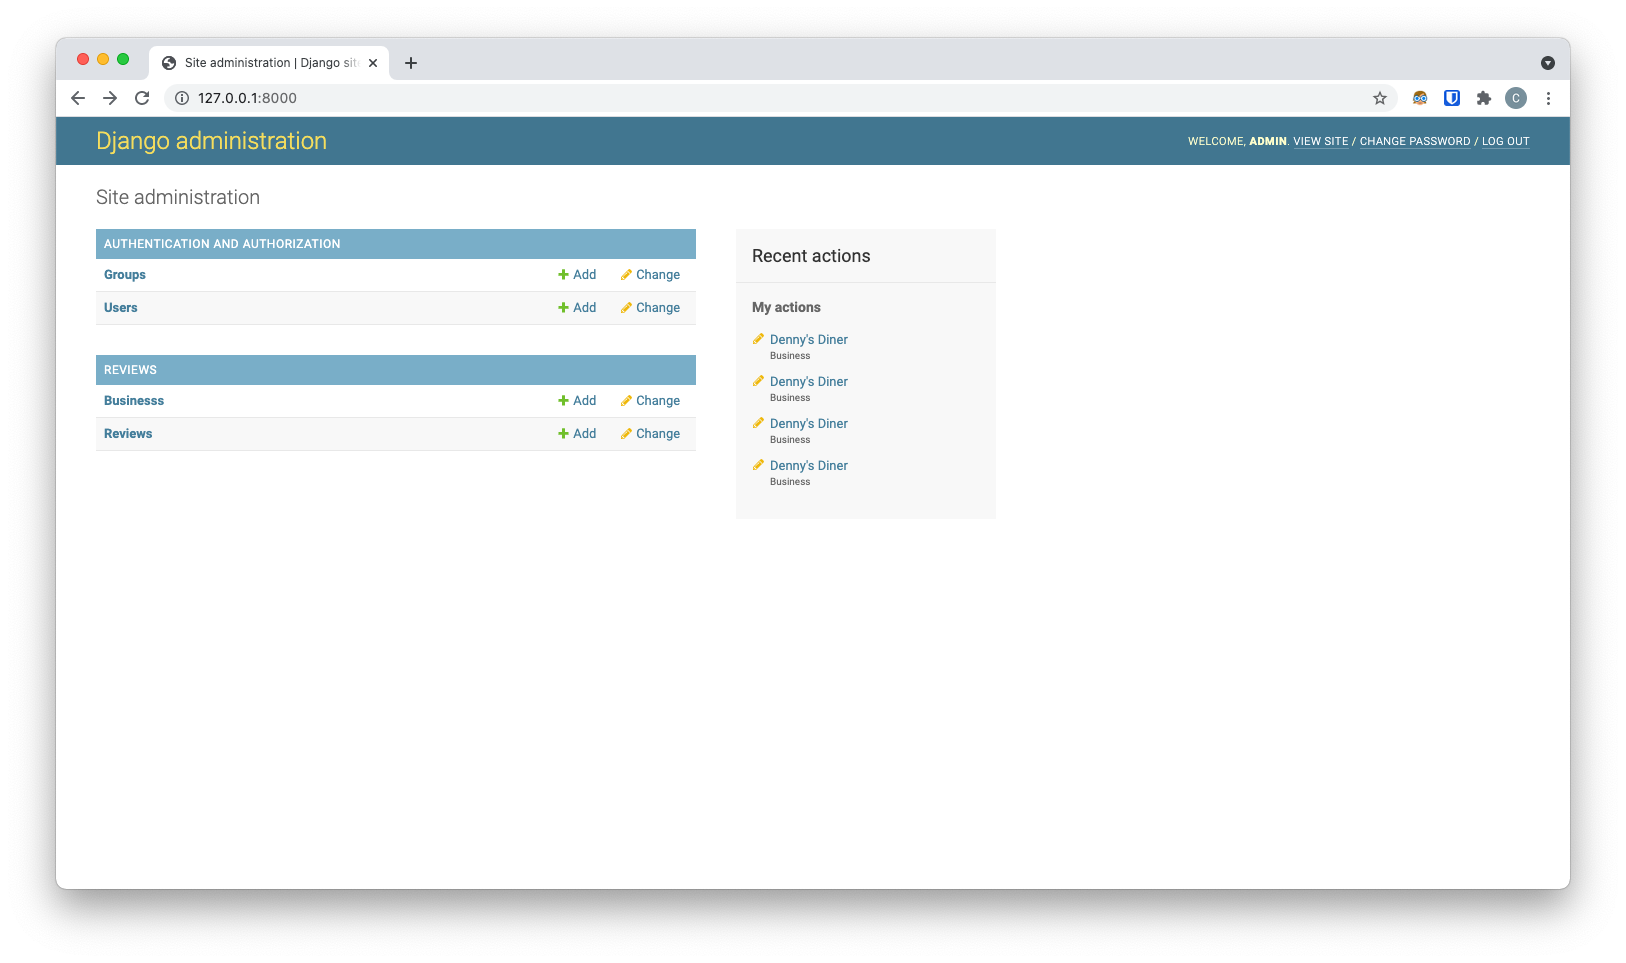 image showing dashboard with review app